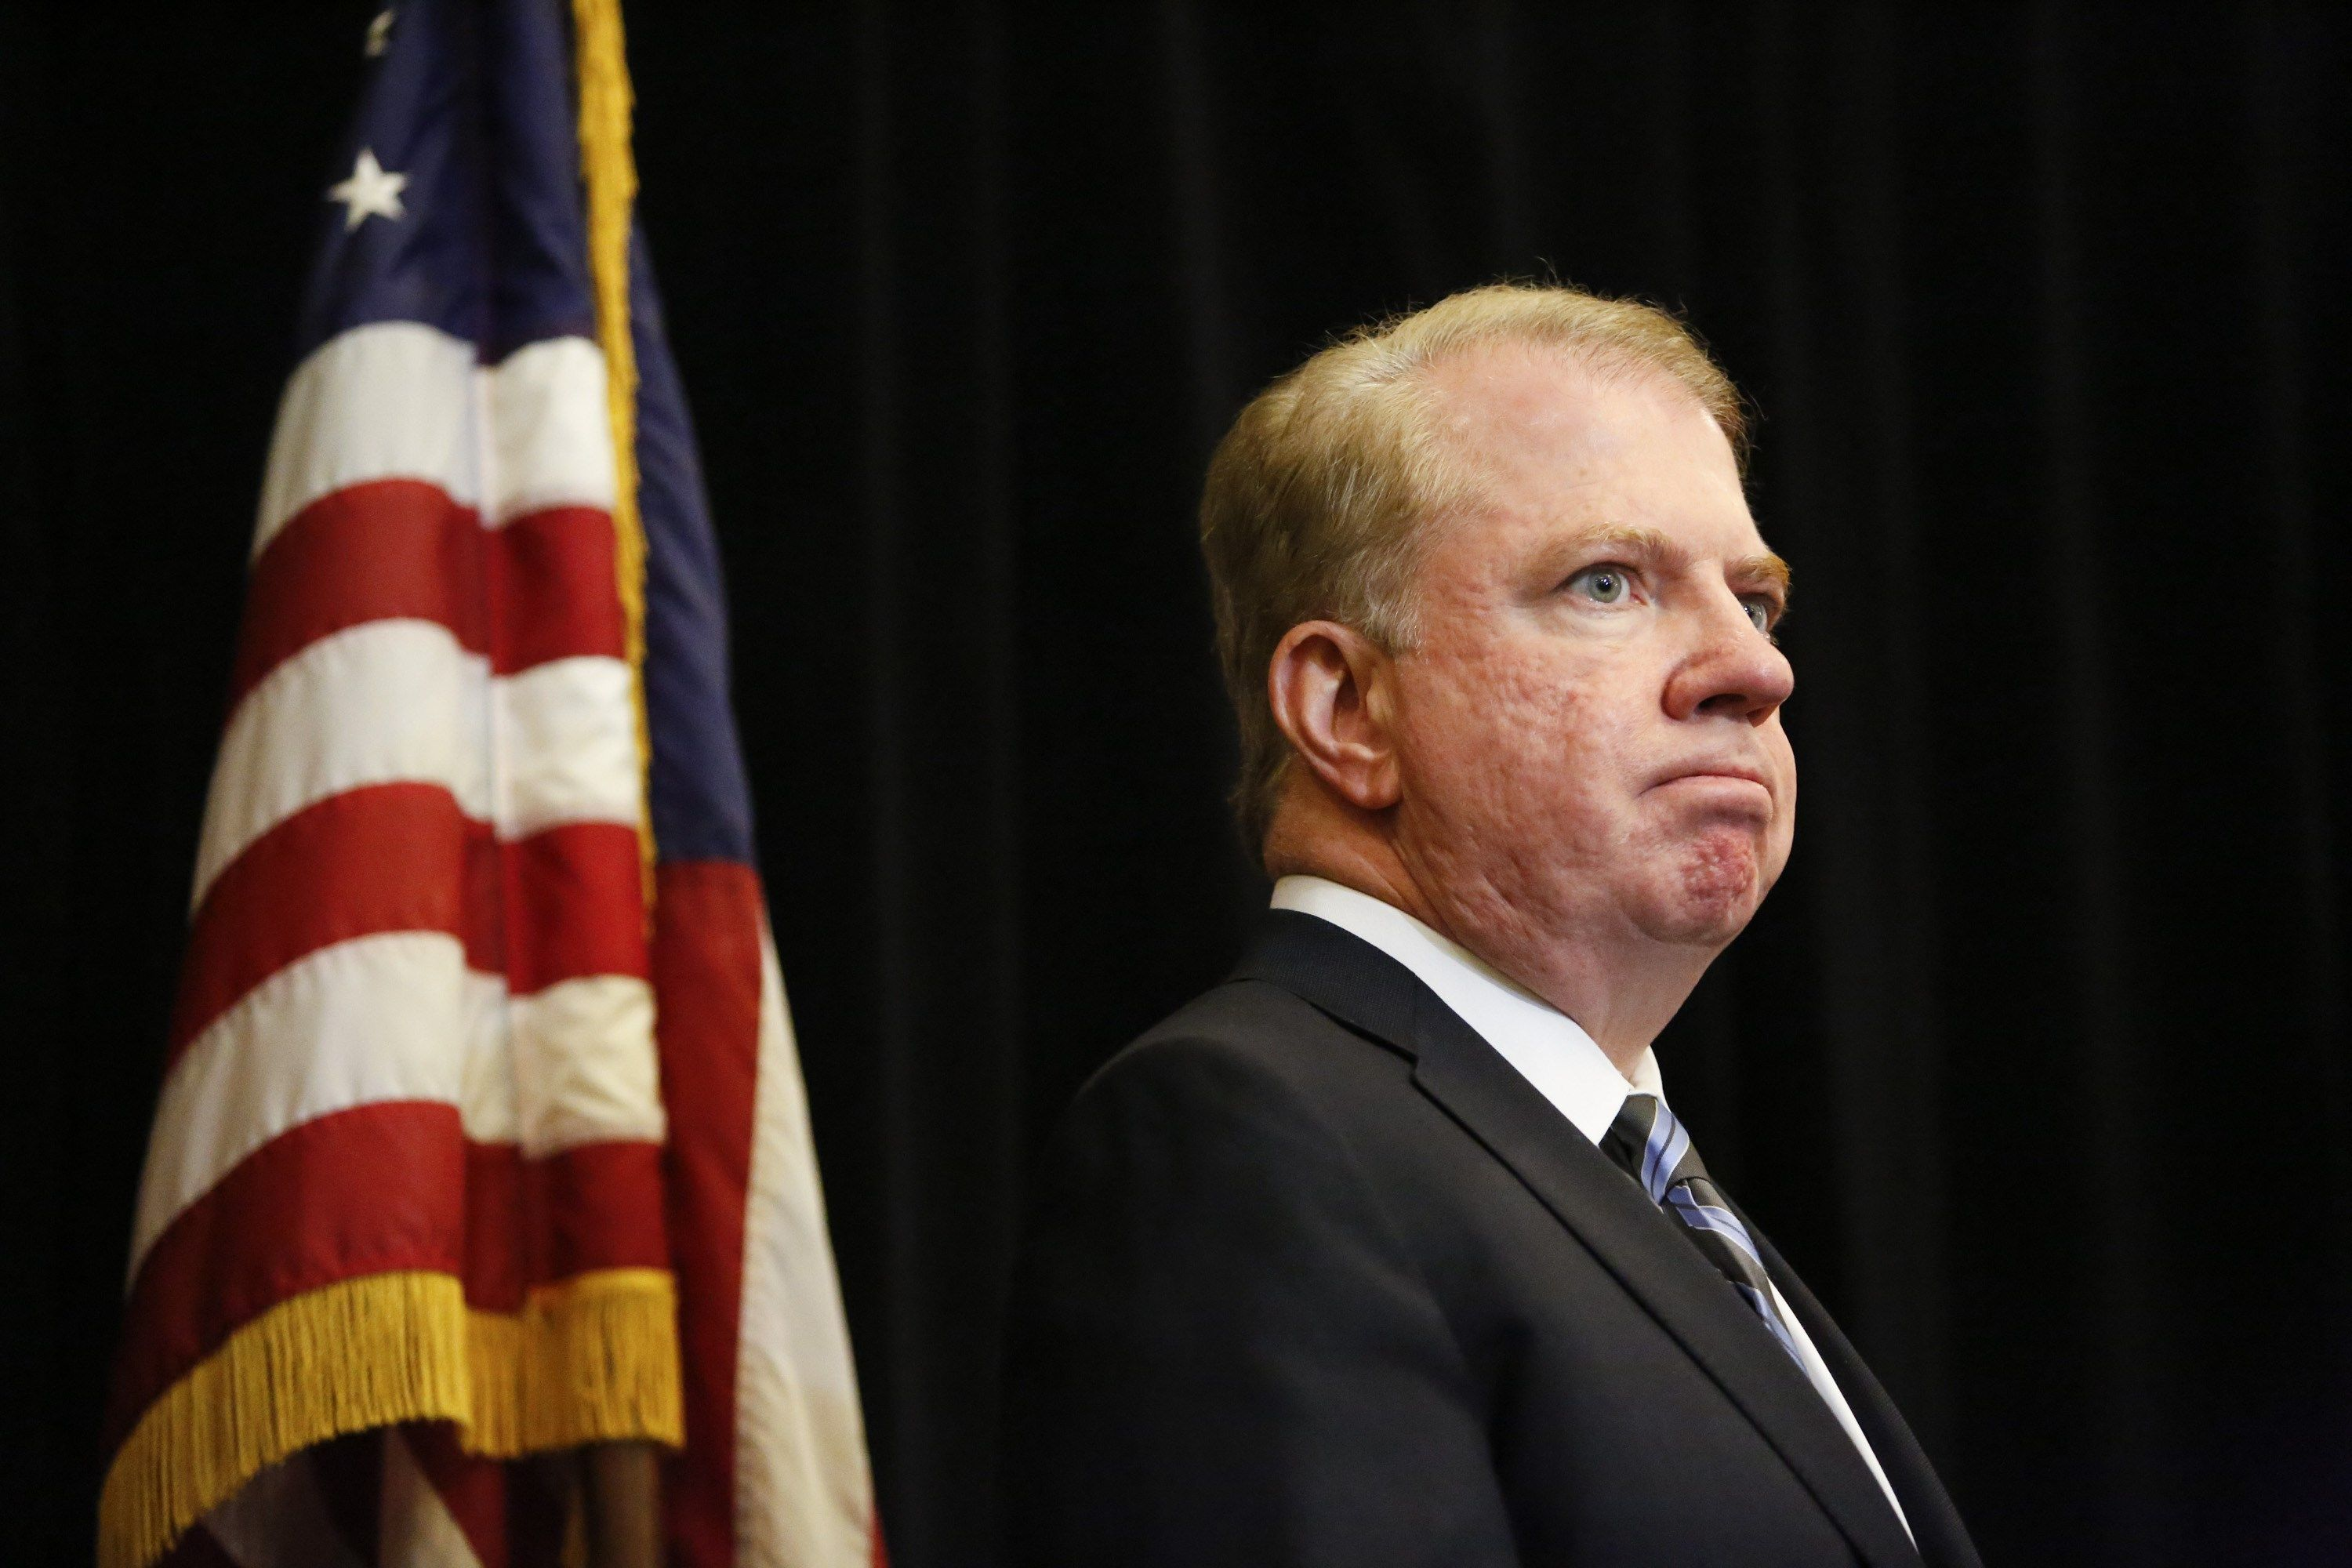 Accuser's lawyer wants to depose Seattle mayor on May 2